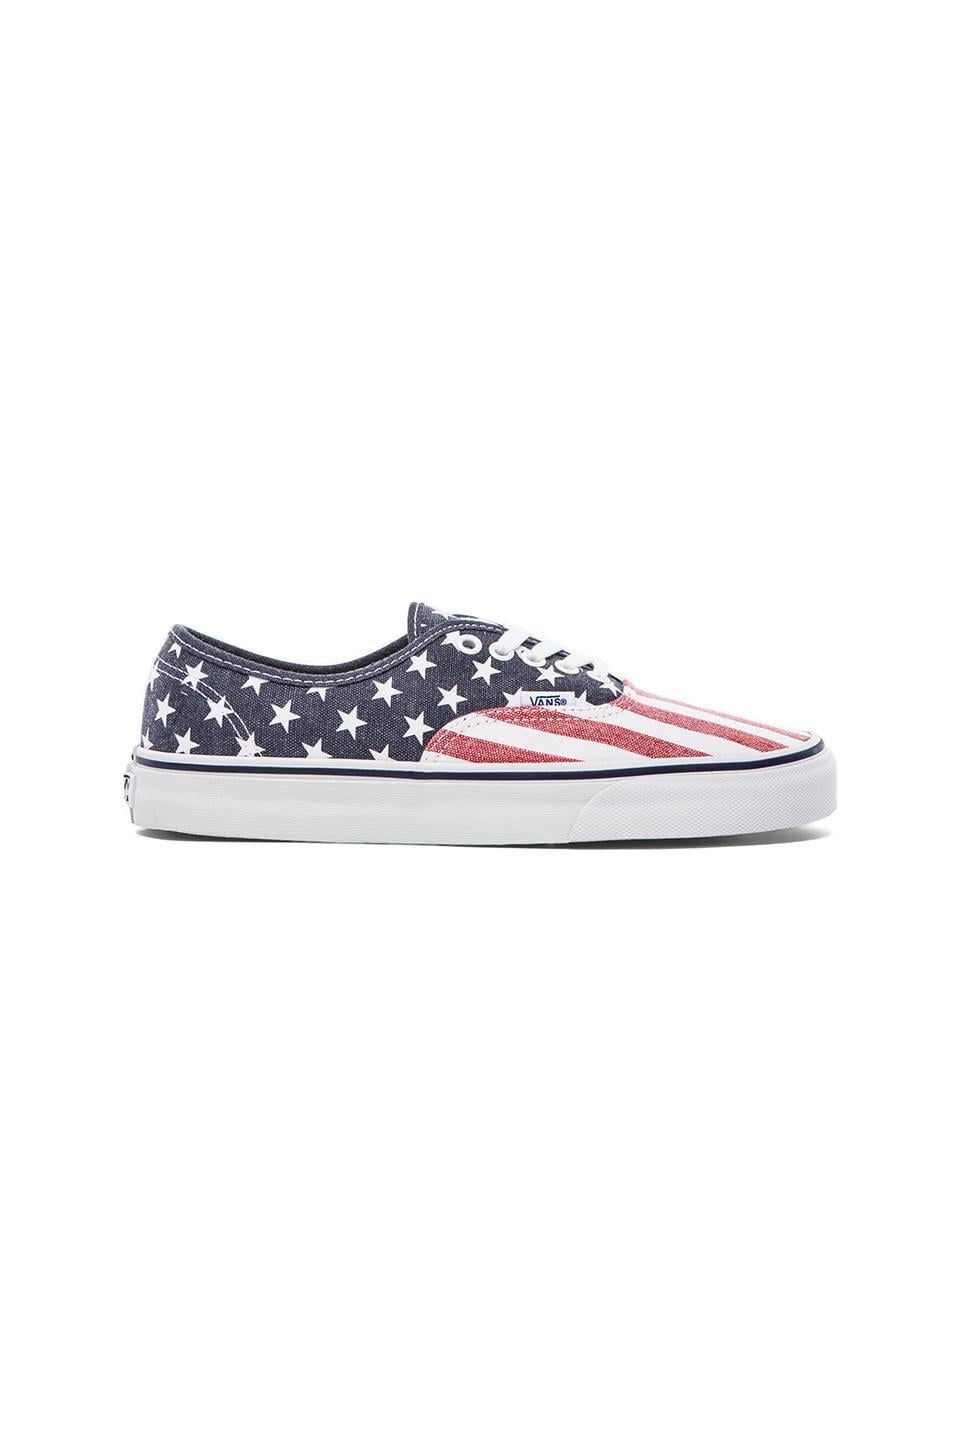 Vans Authentic Van Doren in Stars & Stripes